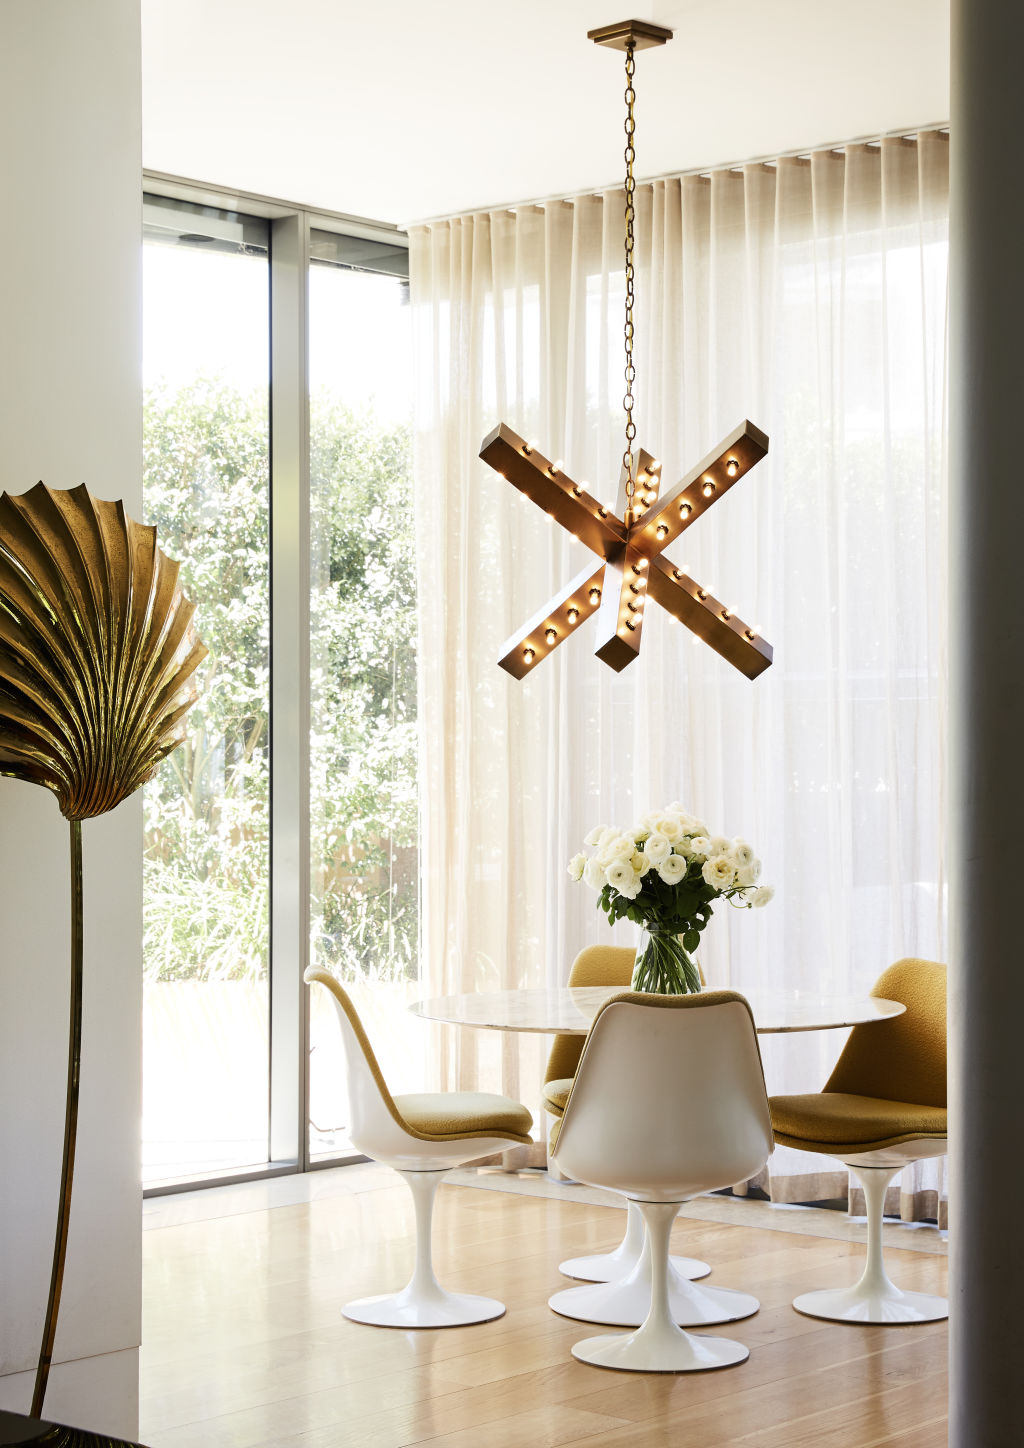 X Lamp in the breakfast room sourced by Poco Designs via Downtown 20 in LA. Vintage table and chairs. Styling: Annie Portelli.